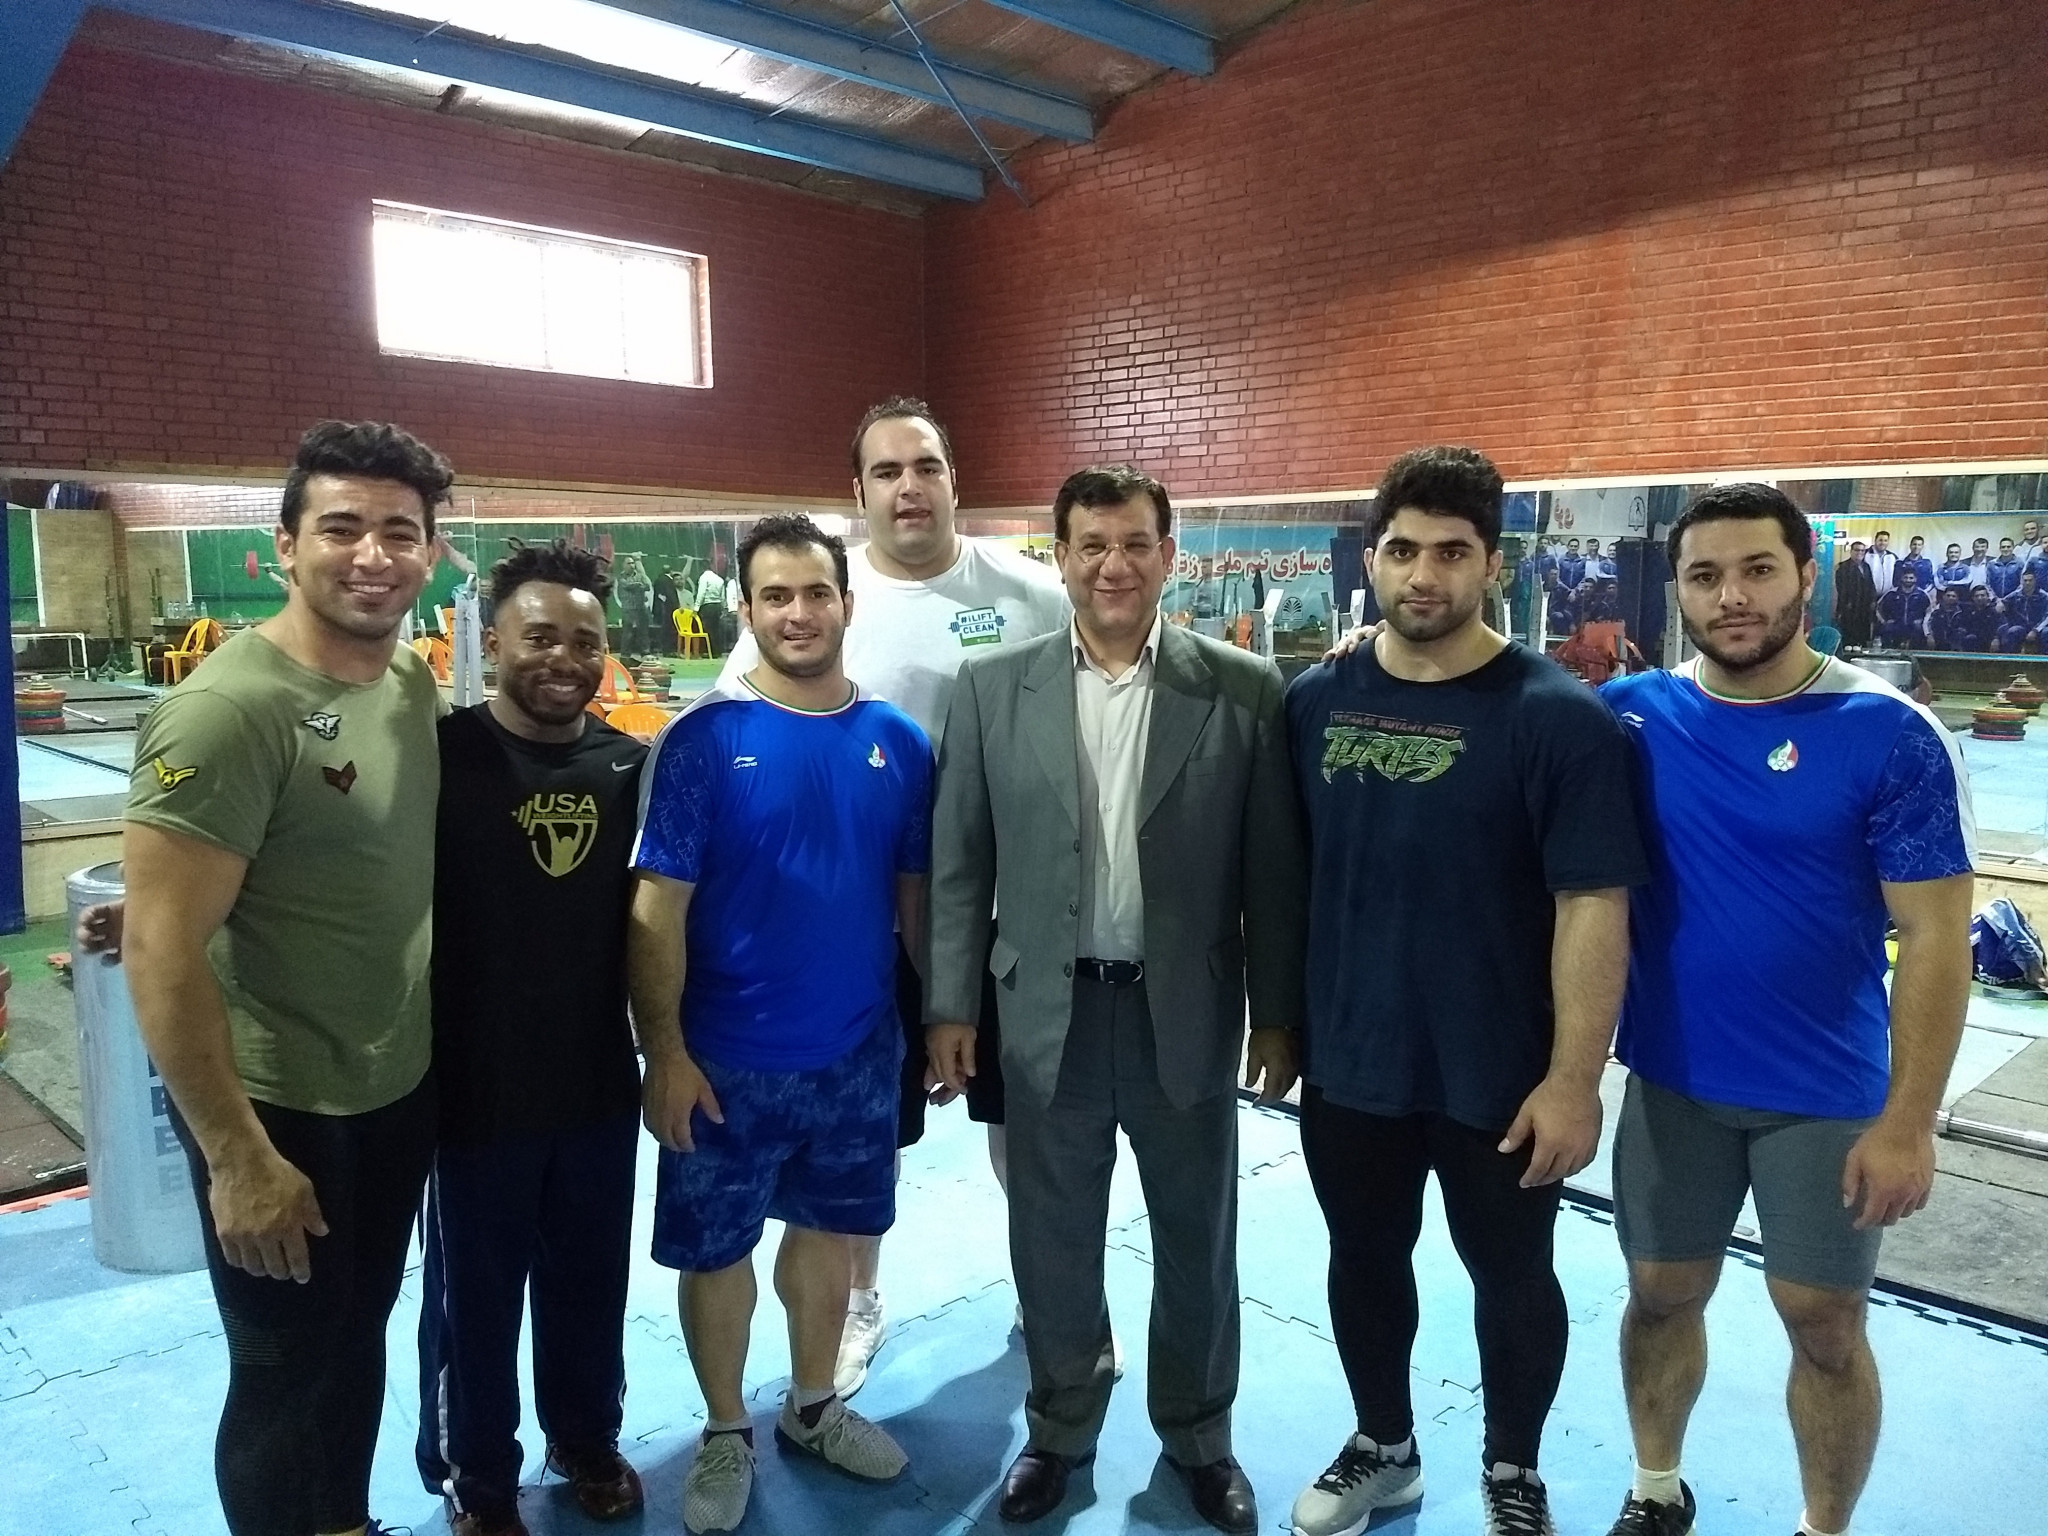 Iran is to protest against its reduced quota of places in weightlifting at the Tokyo 2020 Olympic Games ©ITG